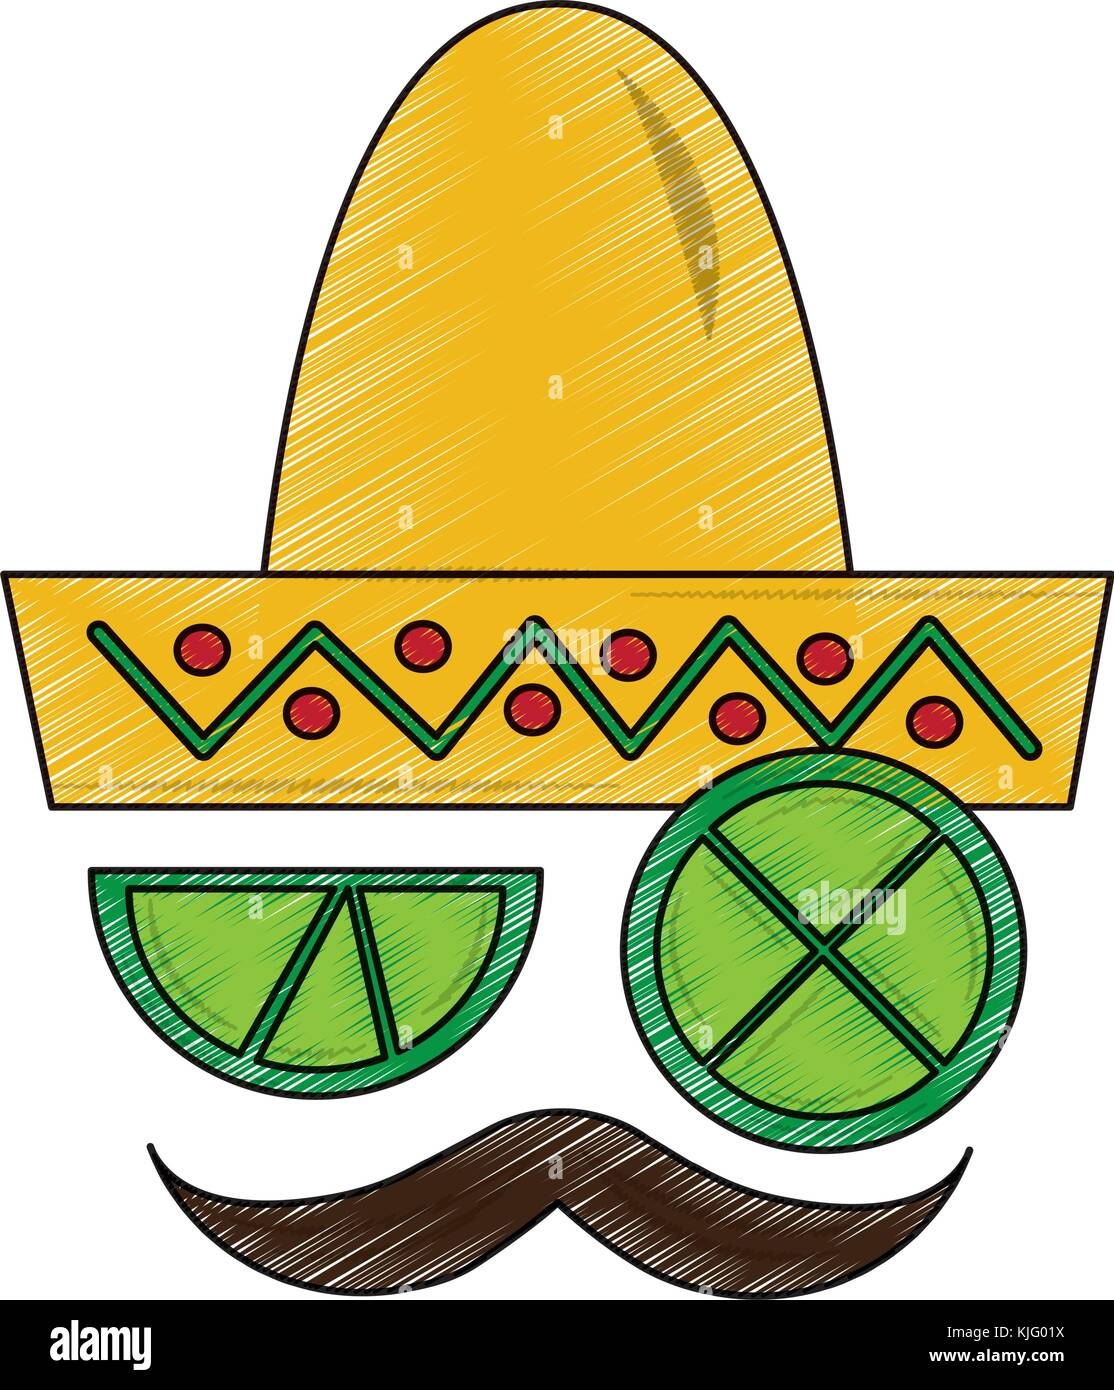 Mexican Hat And Mustache With Slice Lemon Culture Symbol Stock